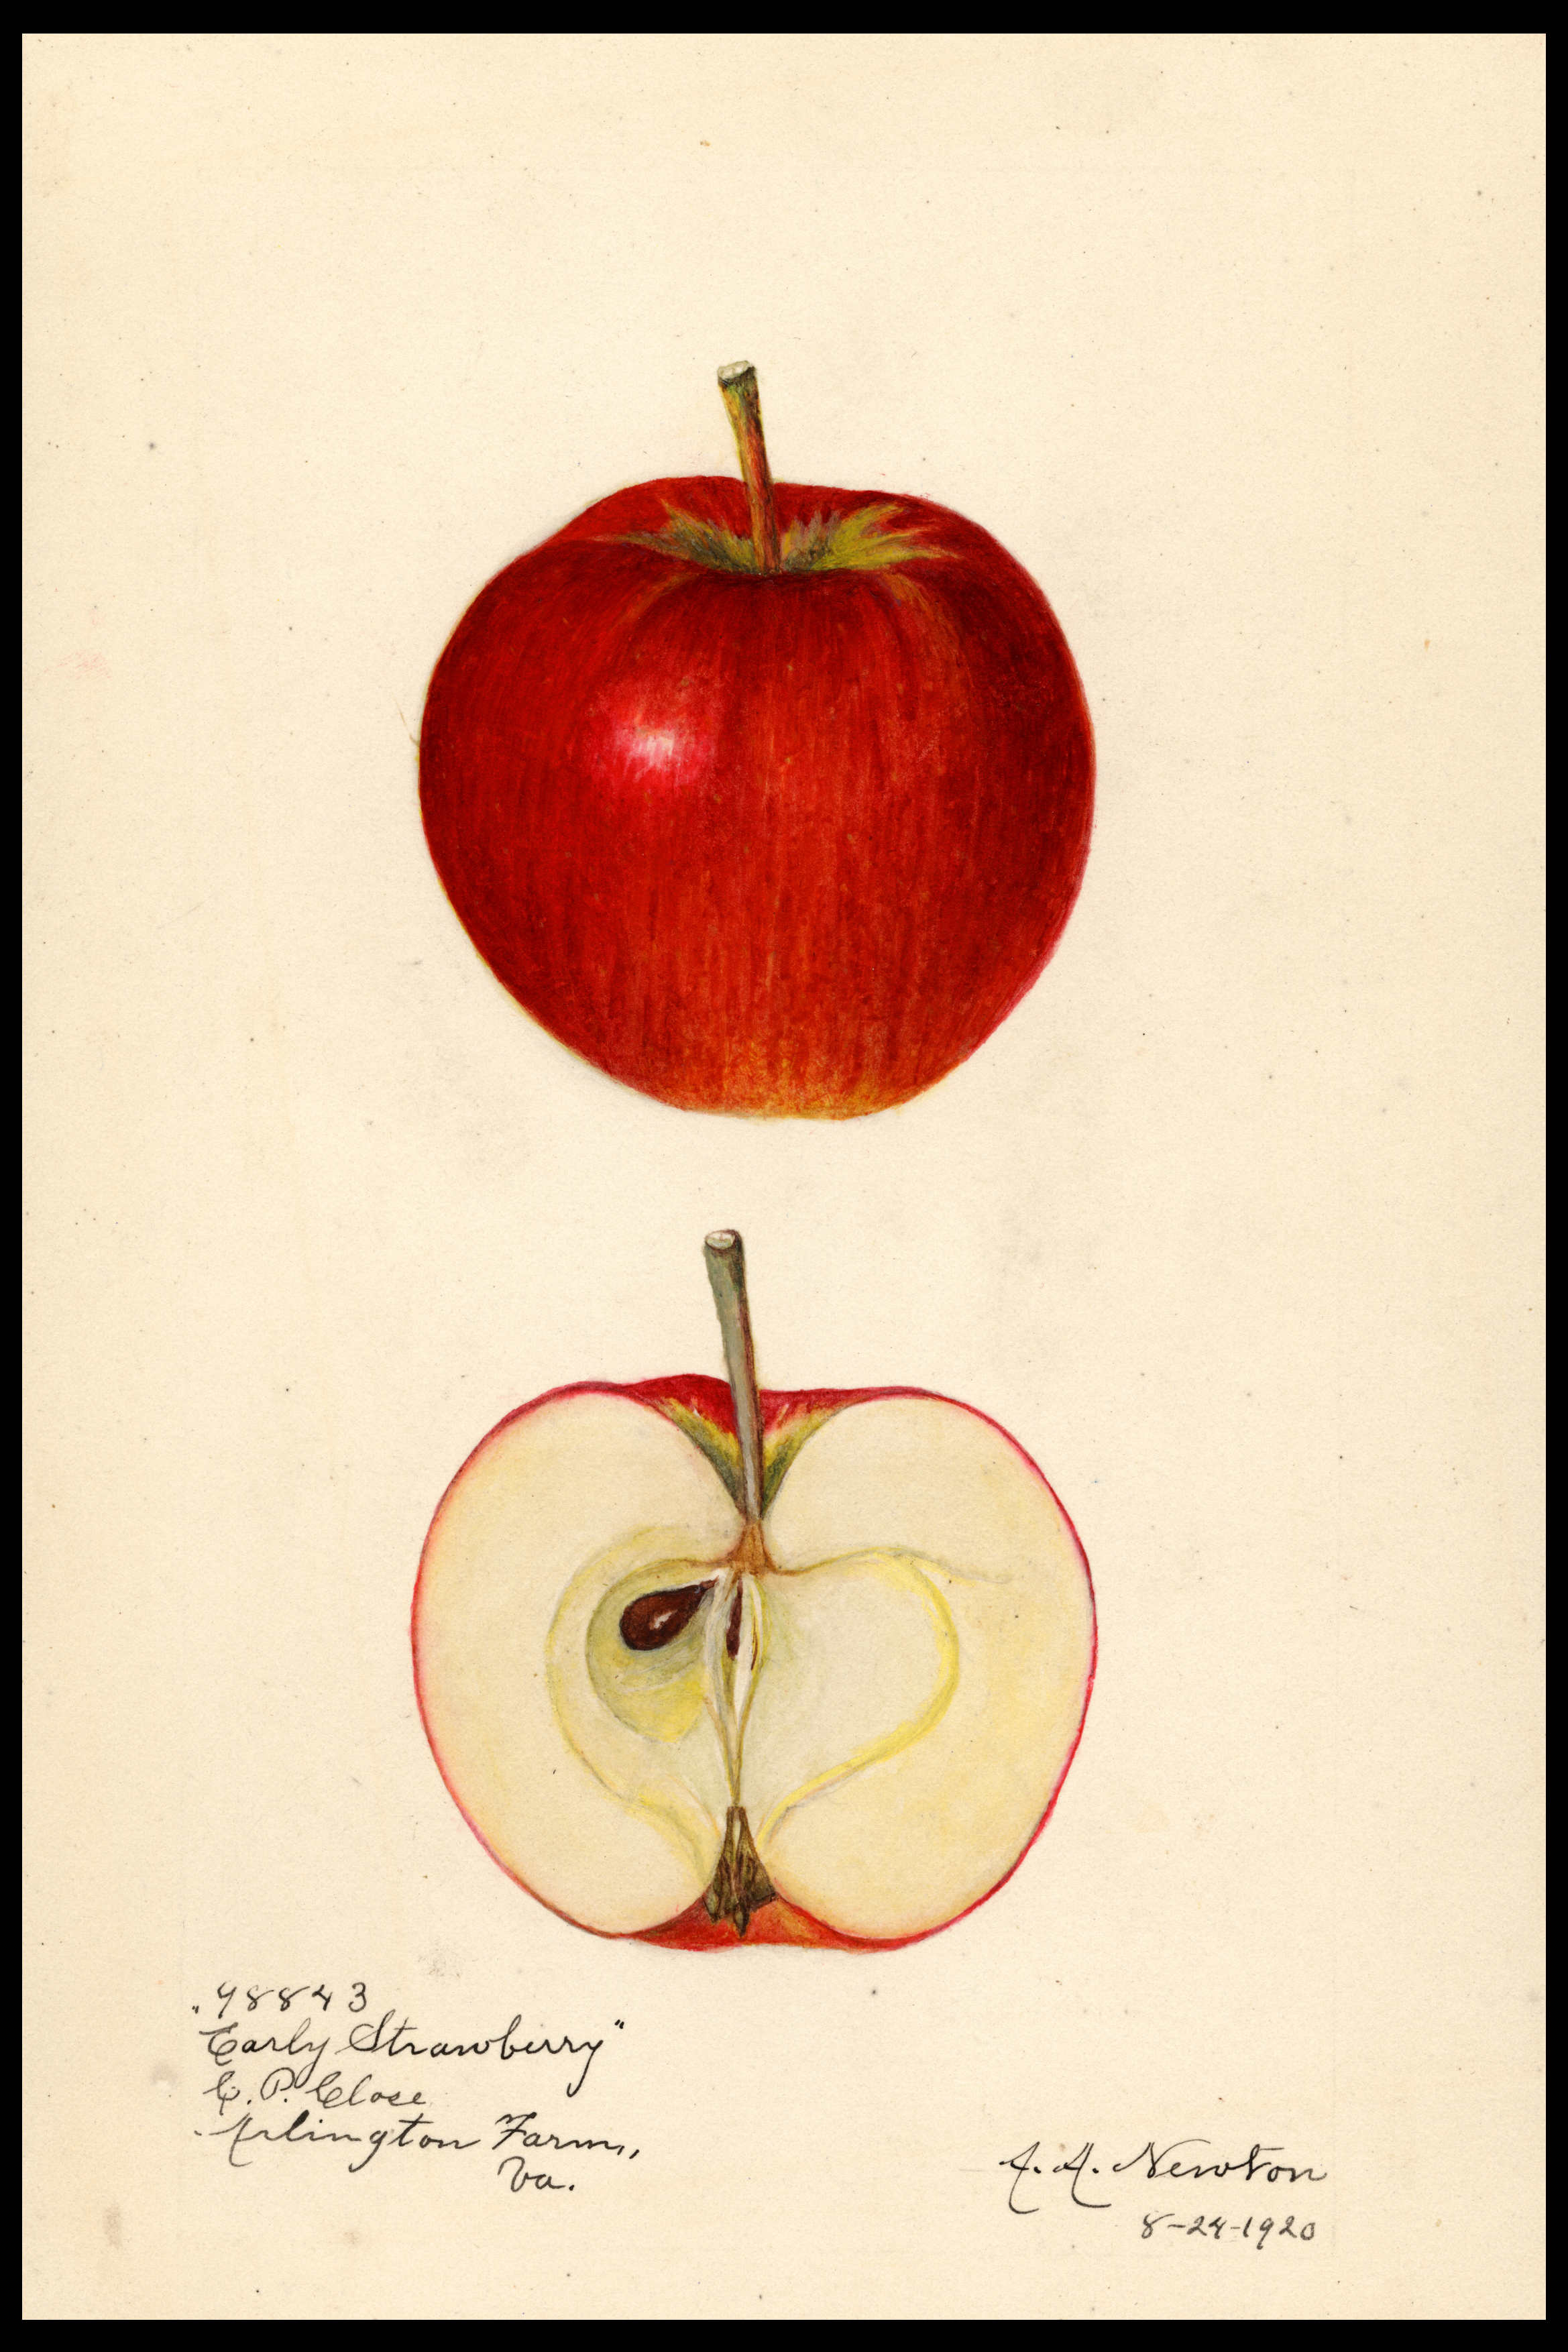 watercolor of a red apple with darker red striping